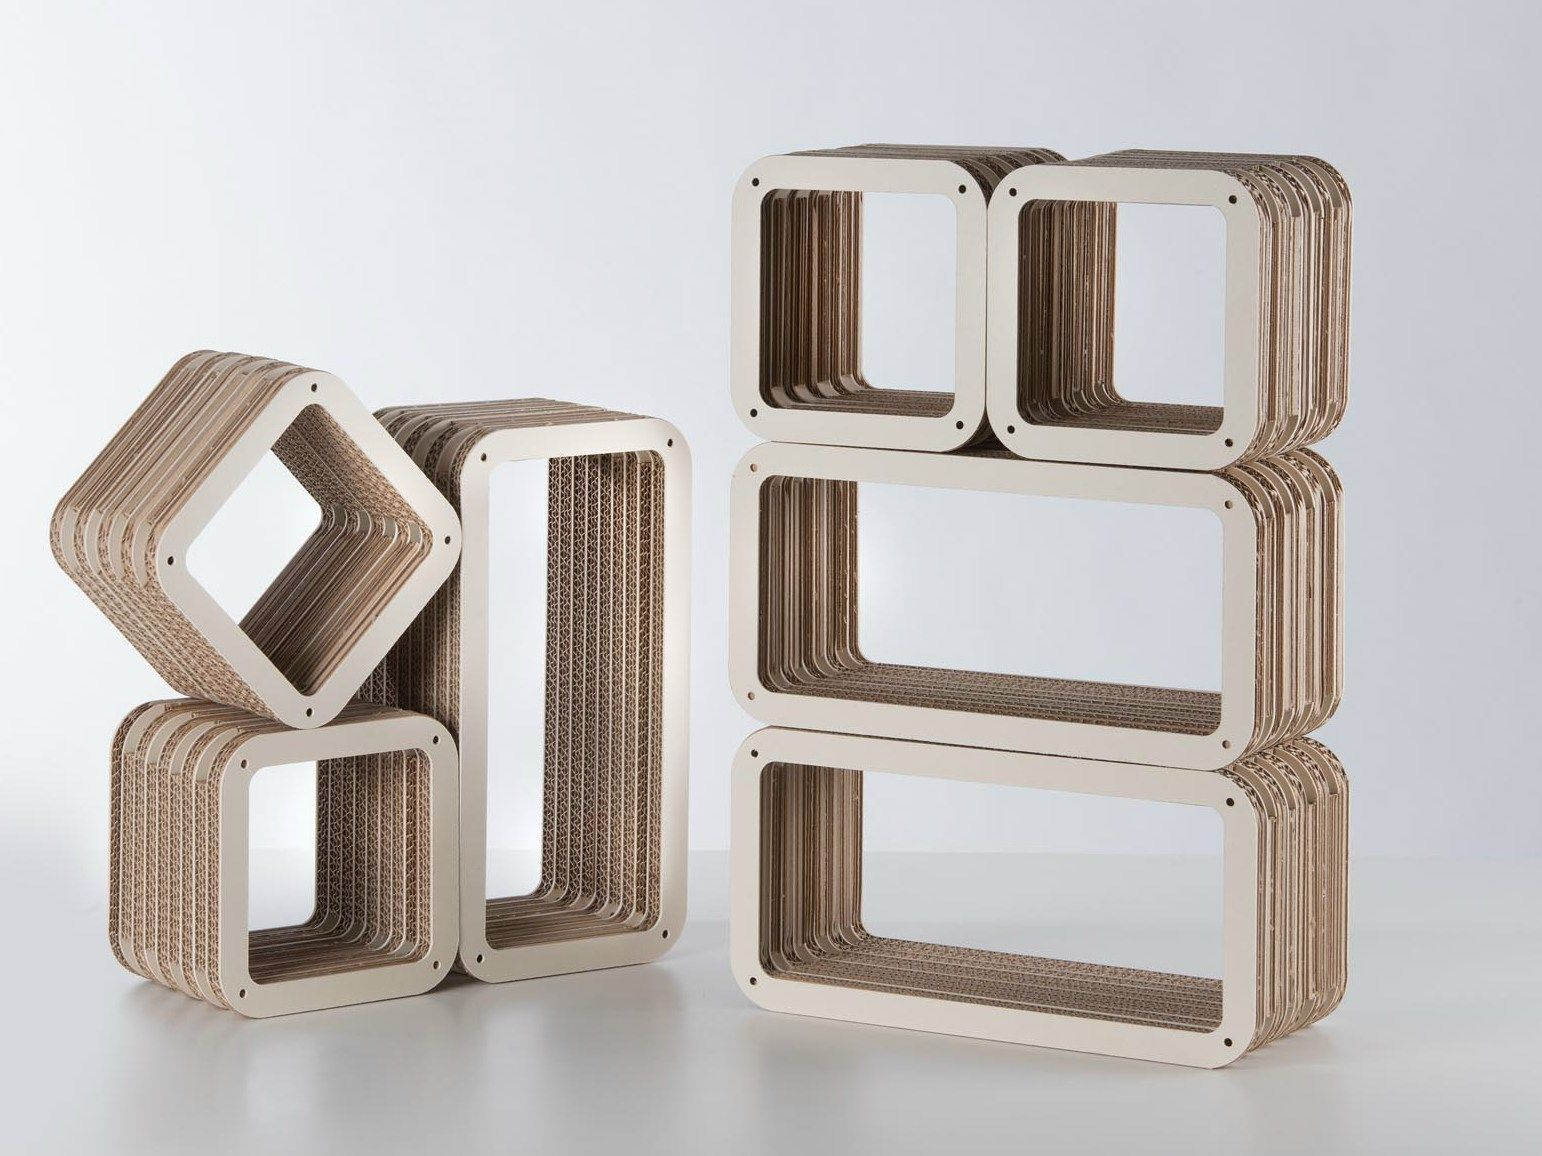 cardboard shelves - Google Search #cardboardshelves cardboard shelves - Google Search #cardboardshelves cardboard shelves - Google Search #cardboardshelves cardboard shelves - Google Search #cardboardshelves